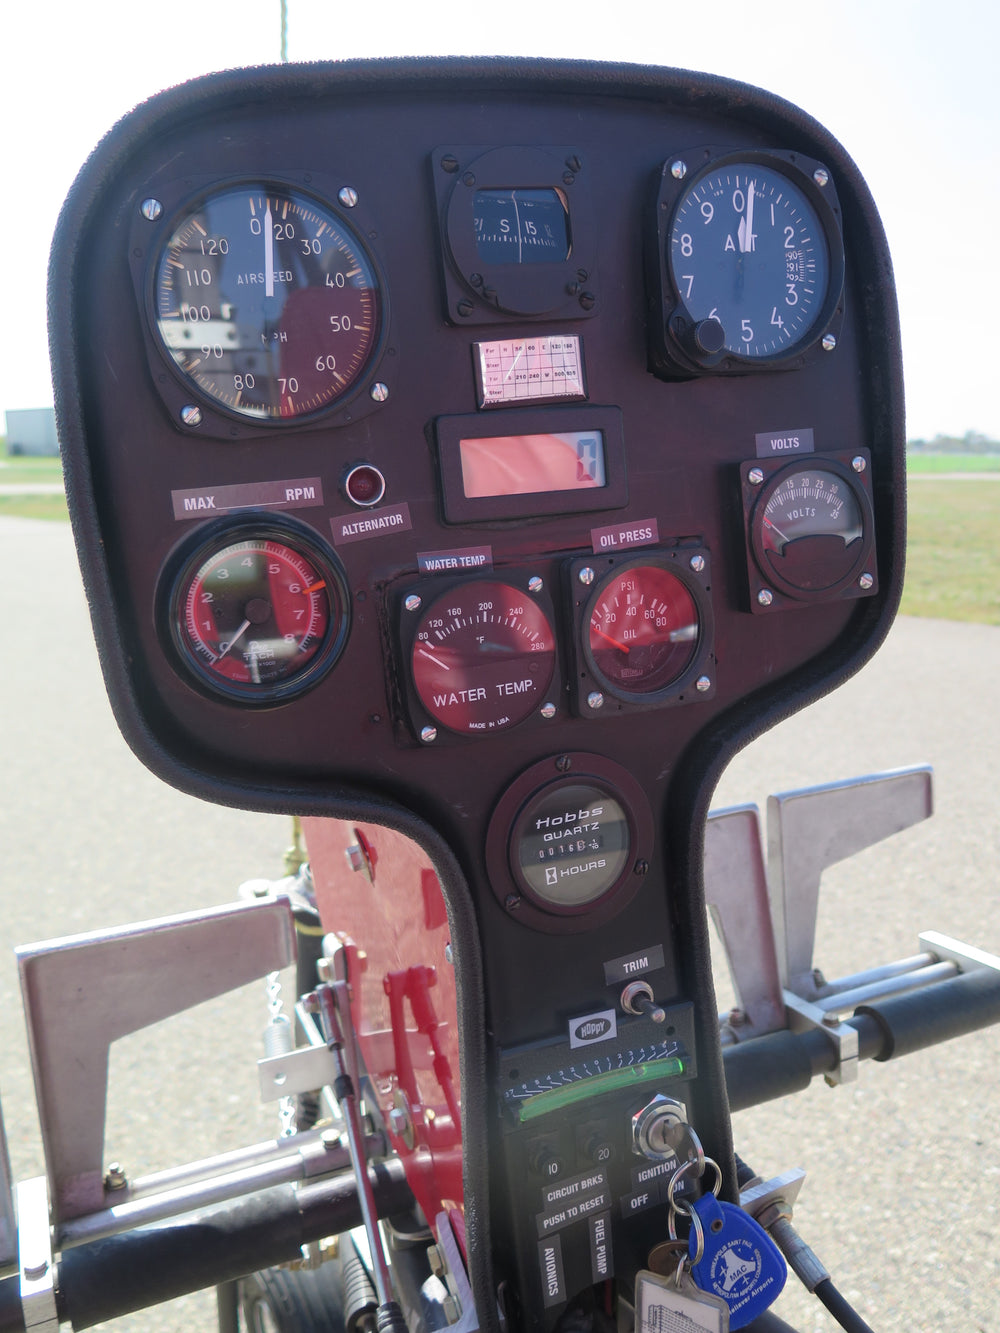 Instrument Panel, Helicopter Style